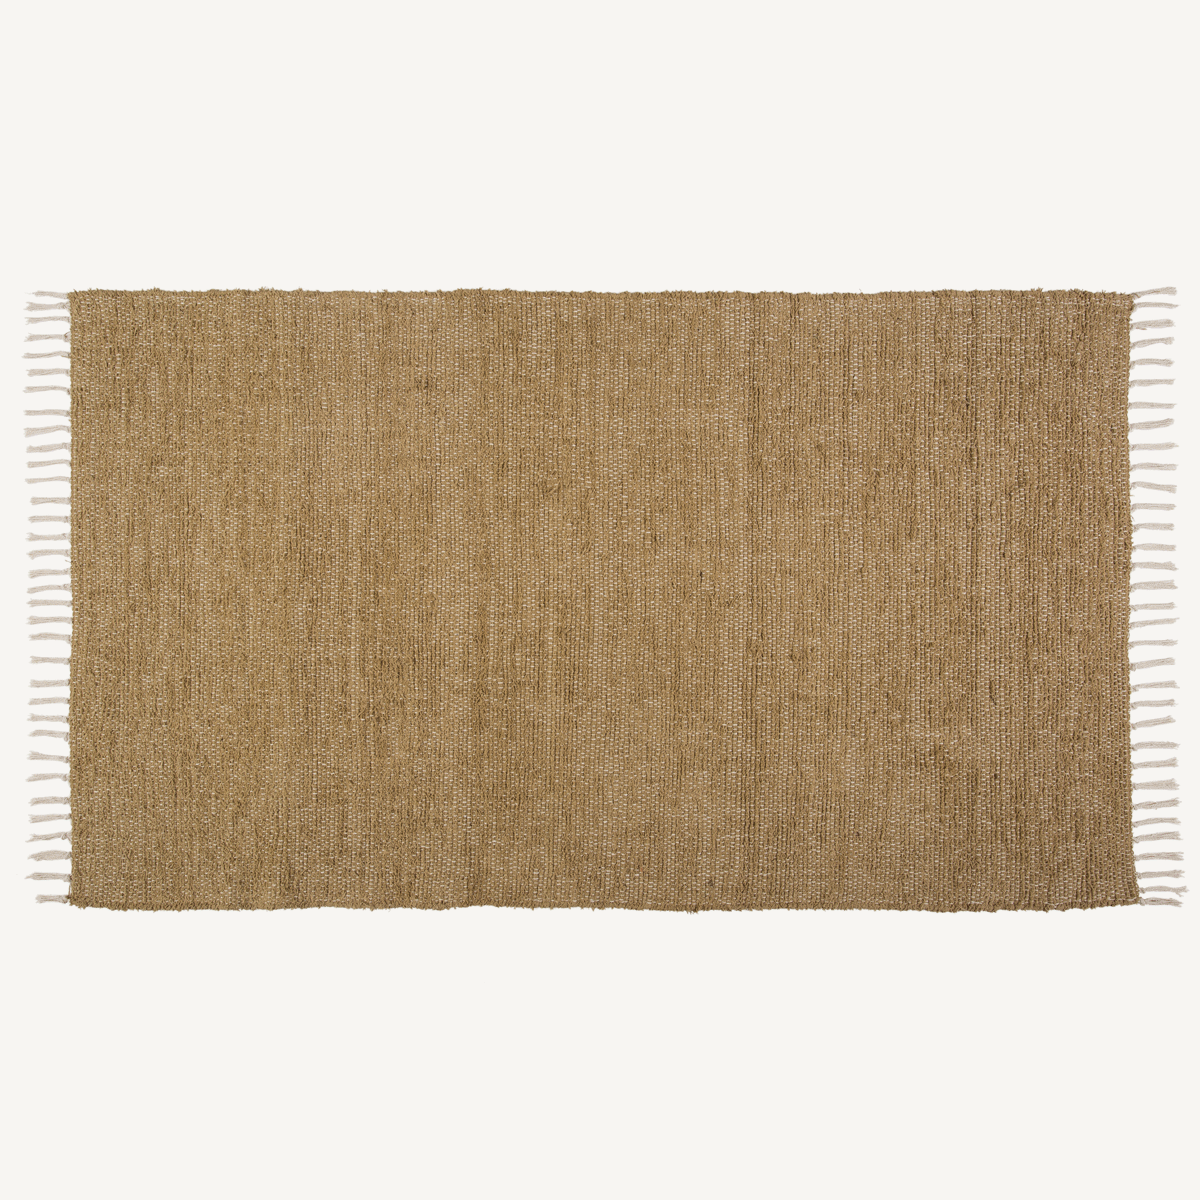 BURLAP NATURAL Chindi/Rag Rug - 36x60 - 100% Cotton Loom Woven - VHC Brands